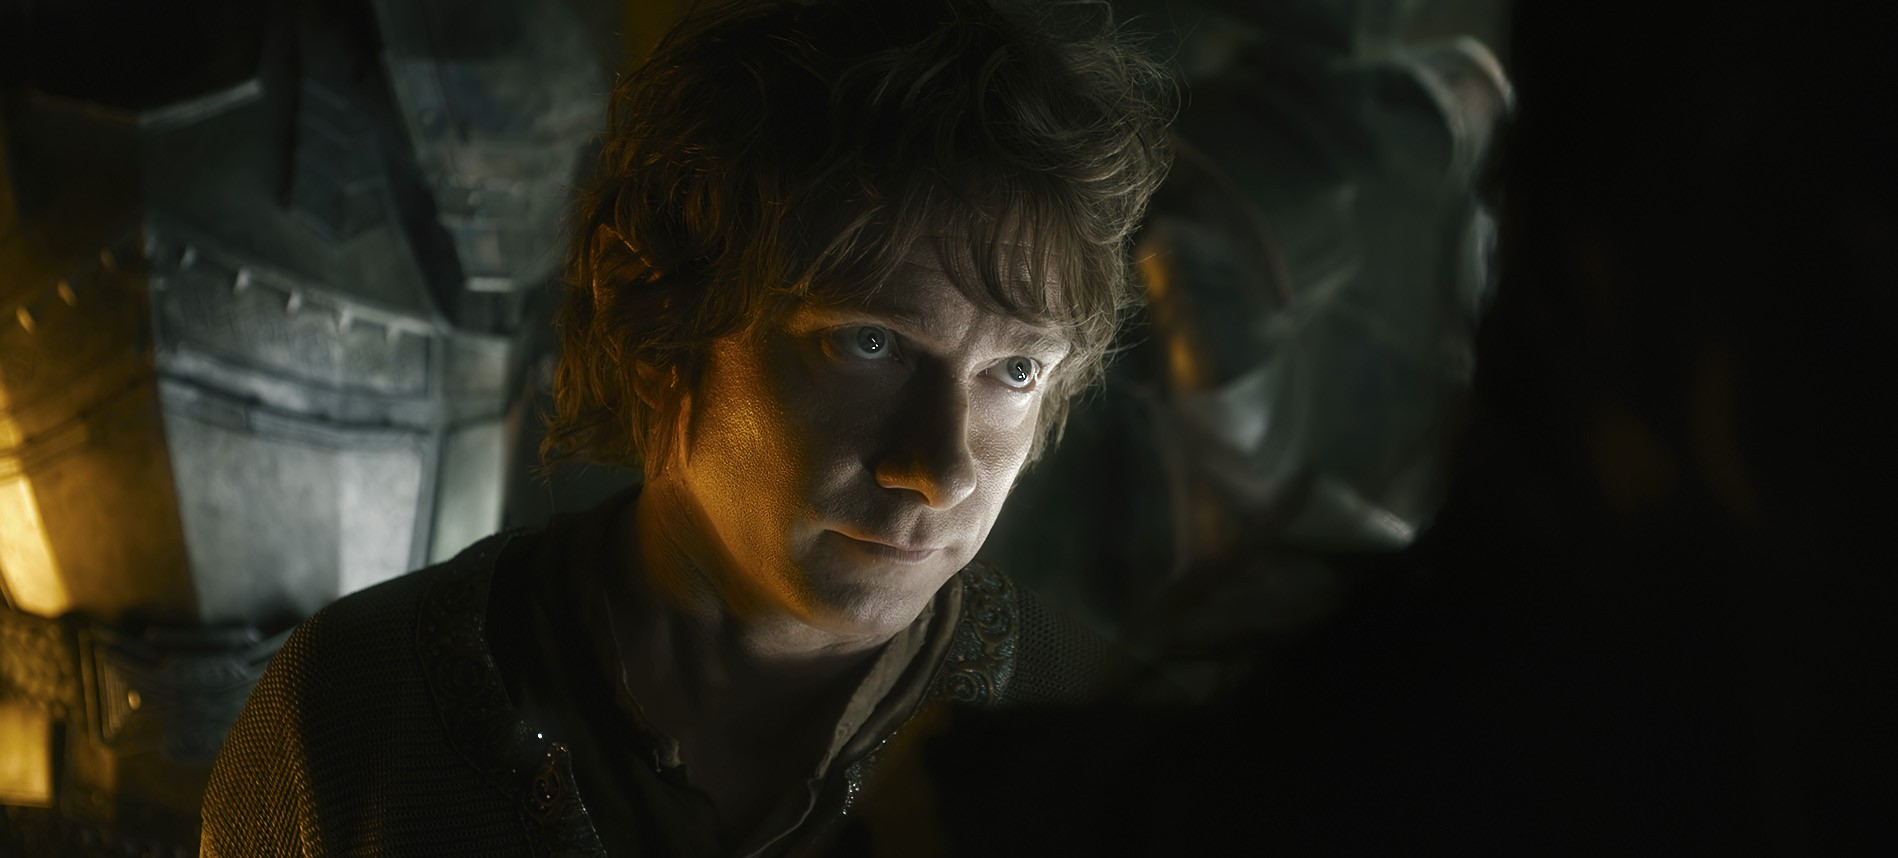 The Hobbit The Battle of the Five Armies-PHOTOS-04DEZEMBRO2014-07